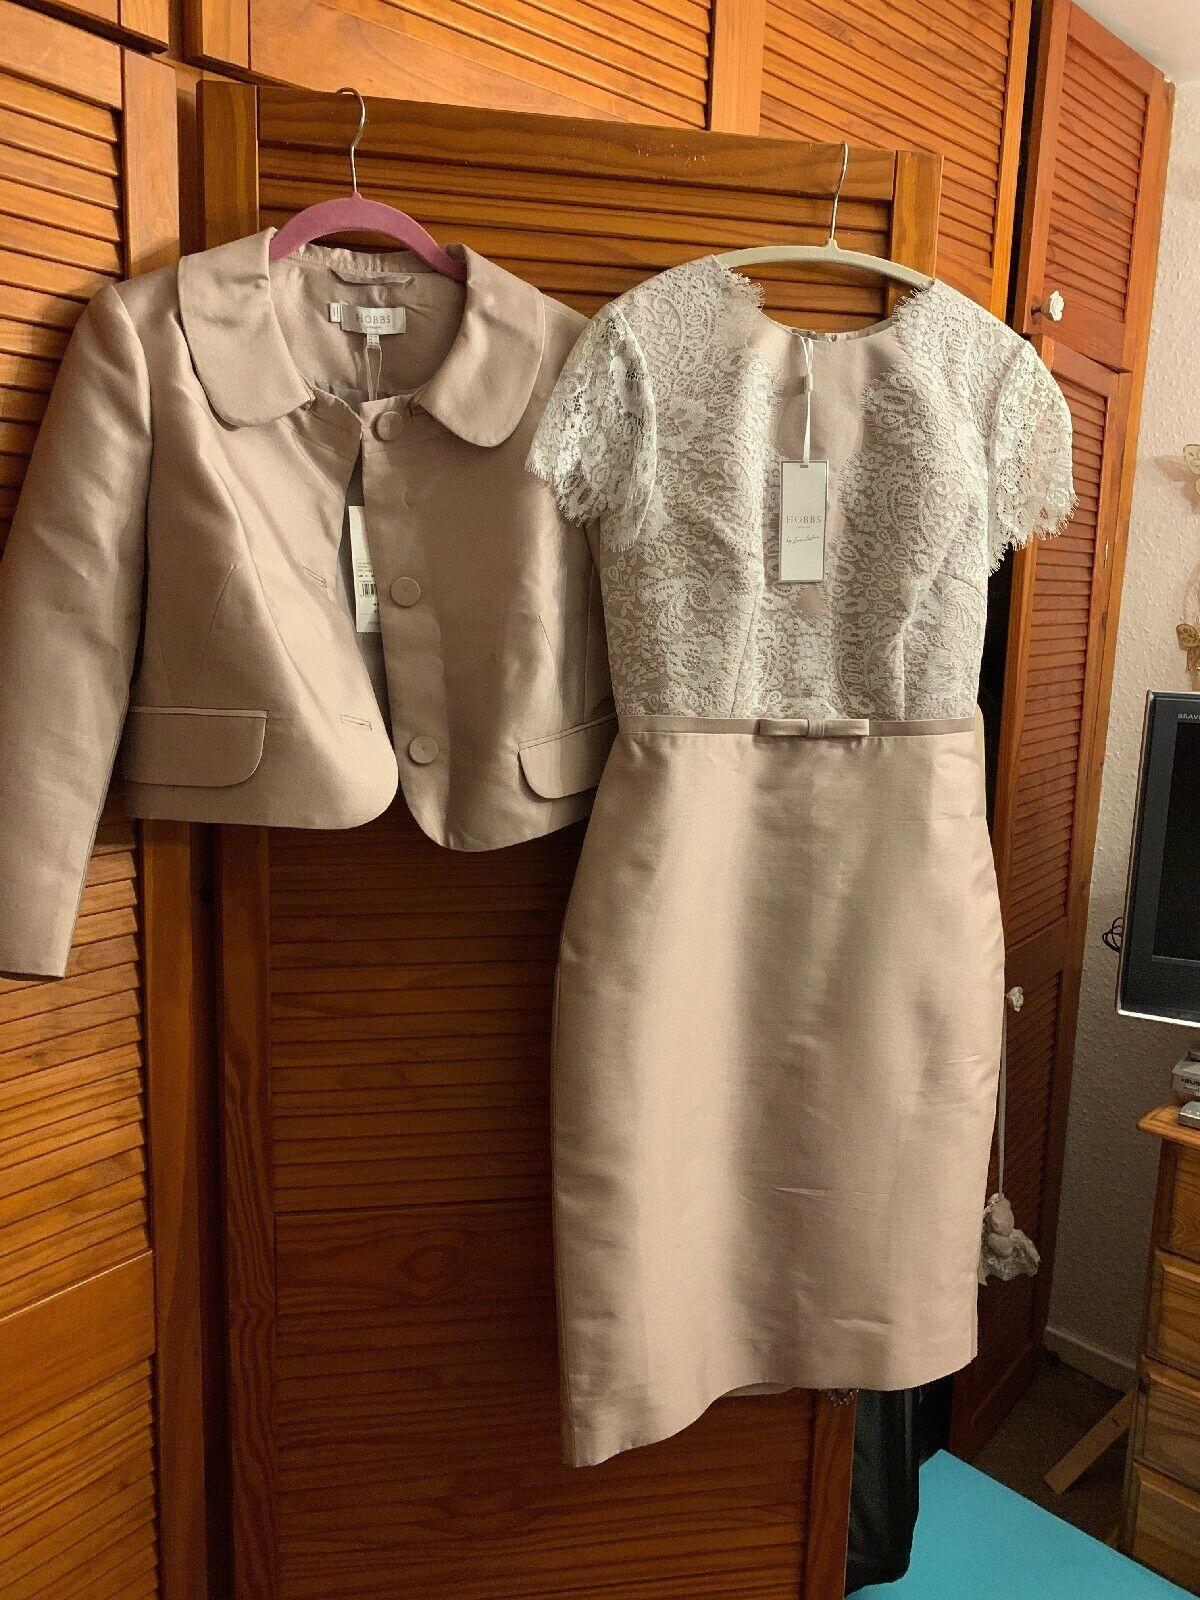 NWT Hobbs Oyster Silk & Wool Dress & Jacket Size 10 Mother Of The Bride/Groom